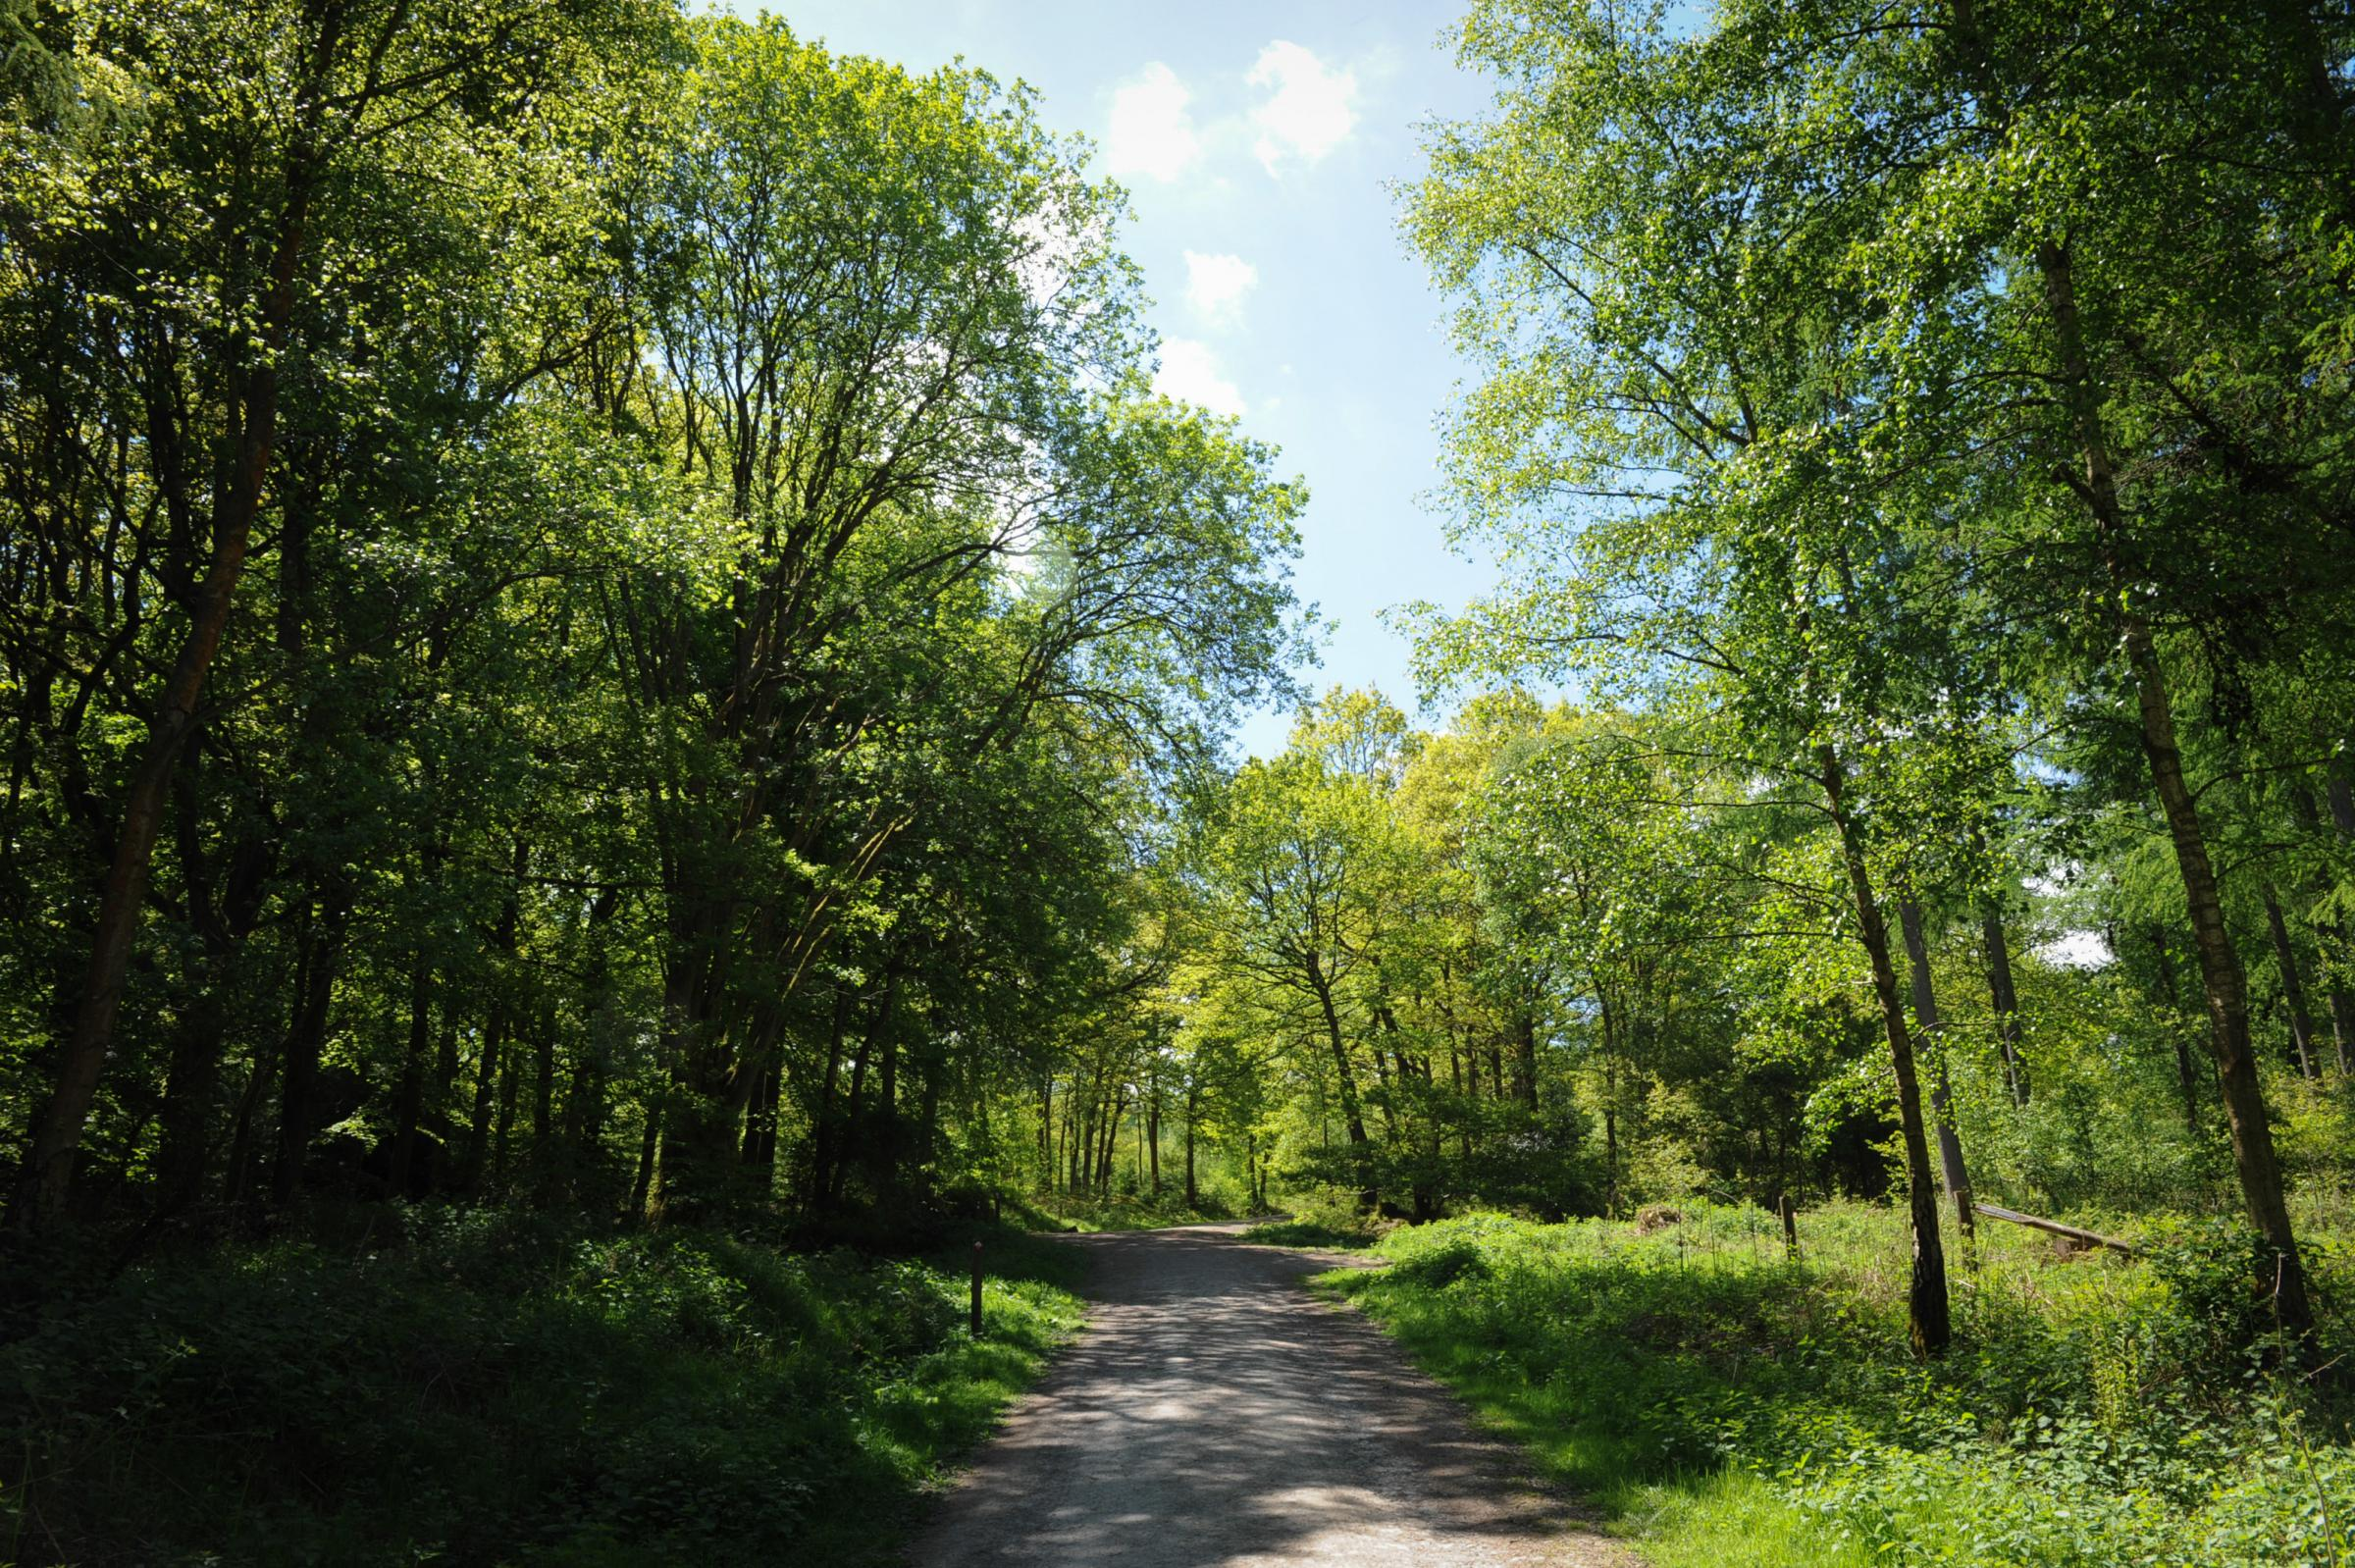 There are fears for the future of Mortimer Forest. Photo: James Maggs